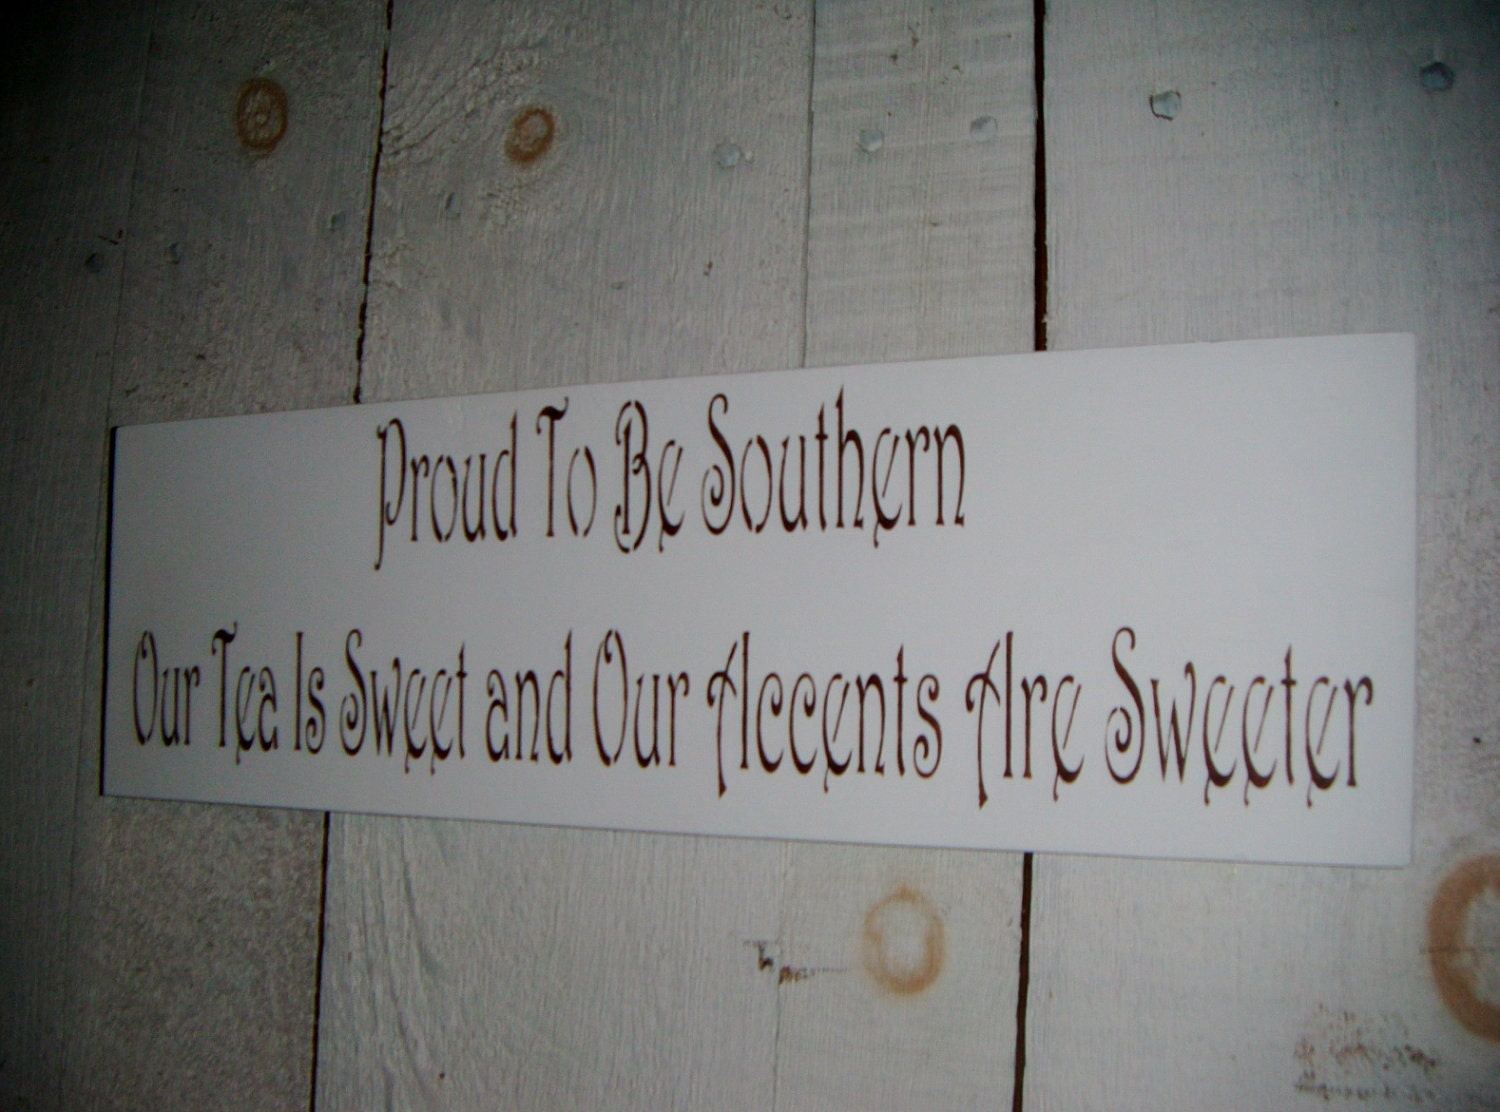 """Our Tea is Sweet and our Accents are Sweeter"""" -Shabby Chic Folk art"""